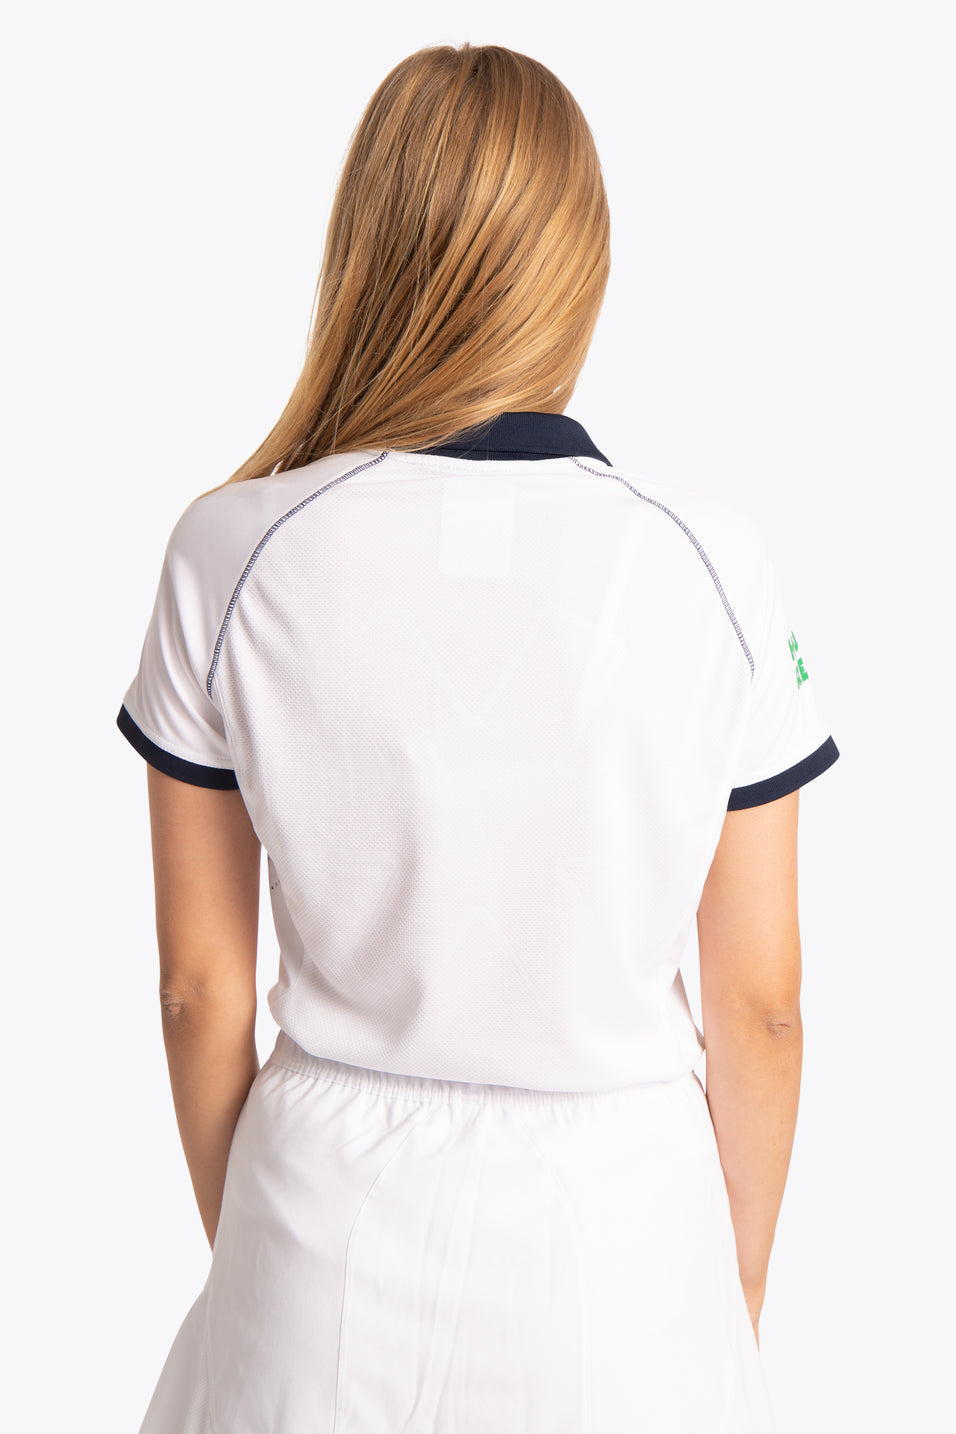 BHV Push Women Polo Jersey - White